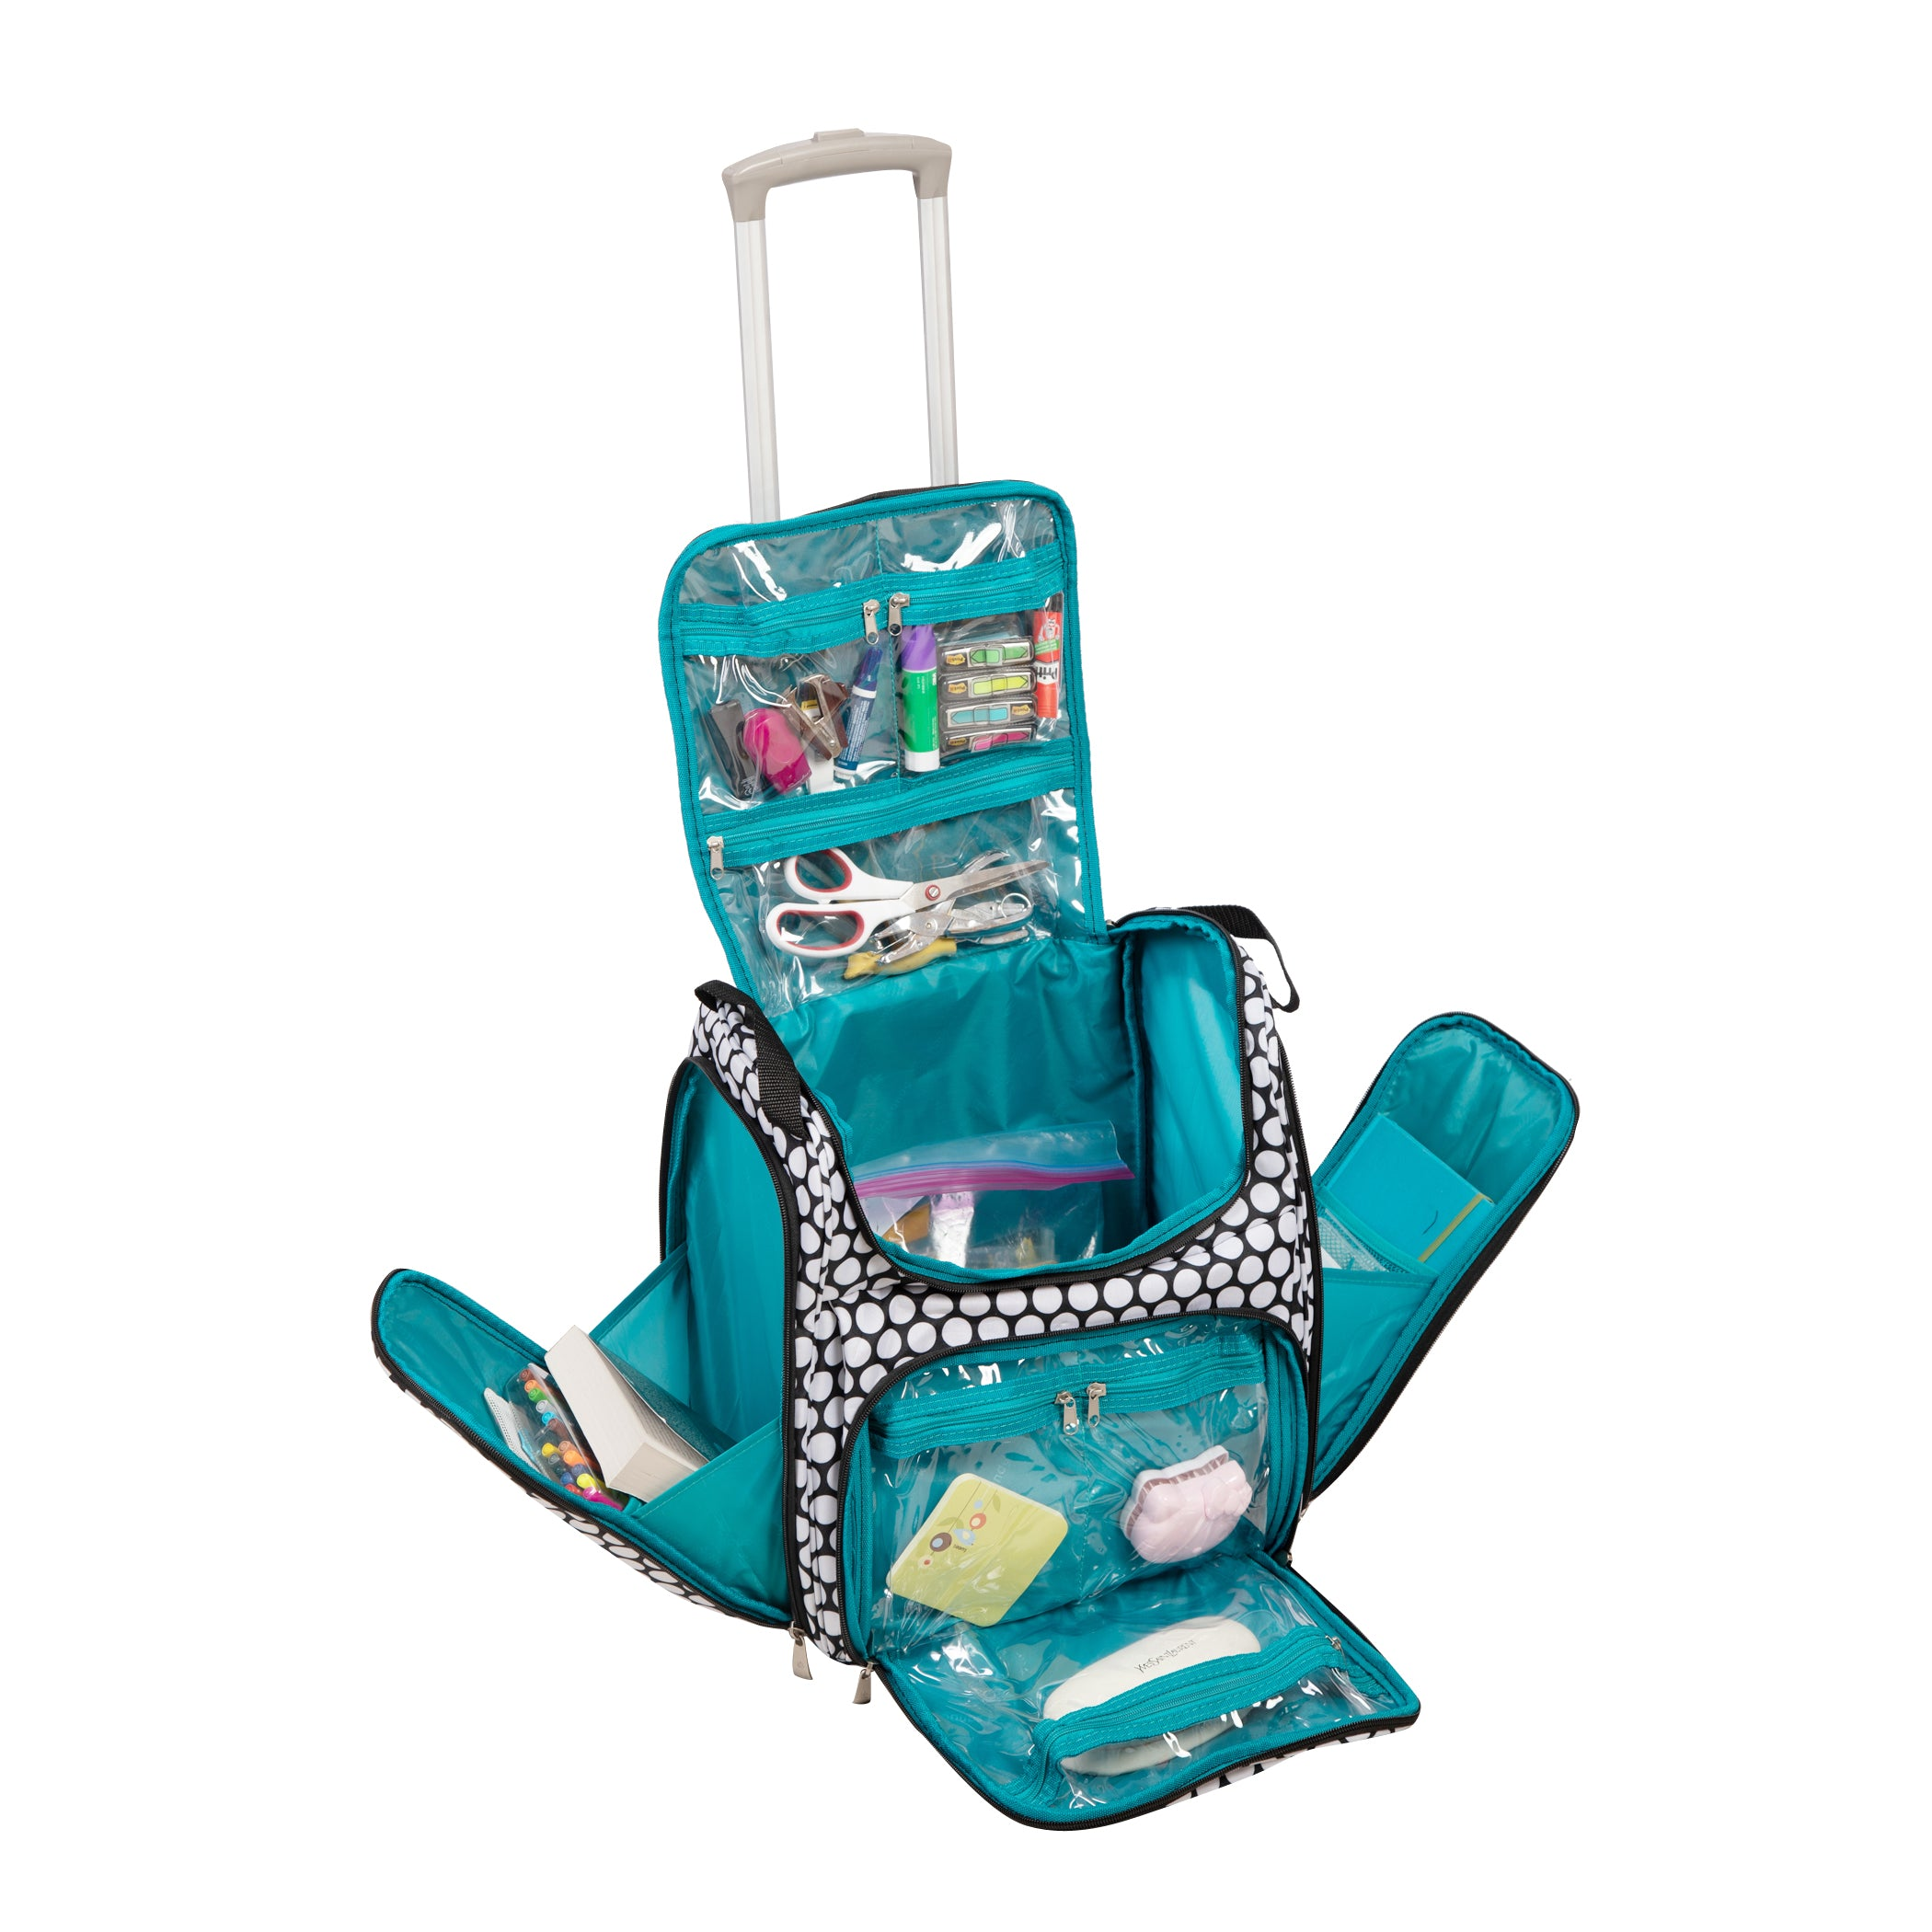 Go Craft Bag with Cart